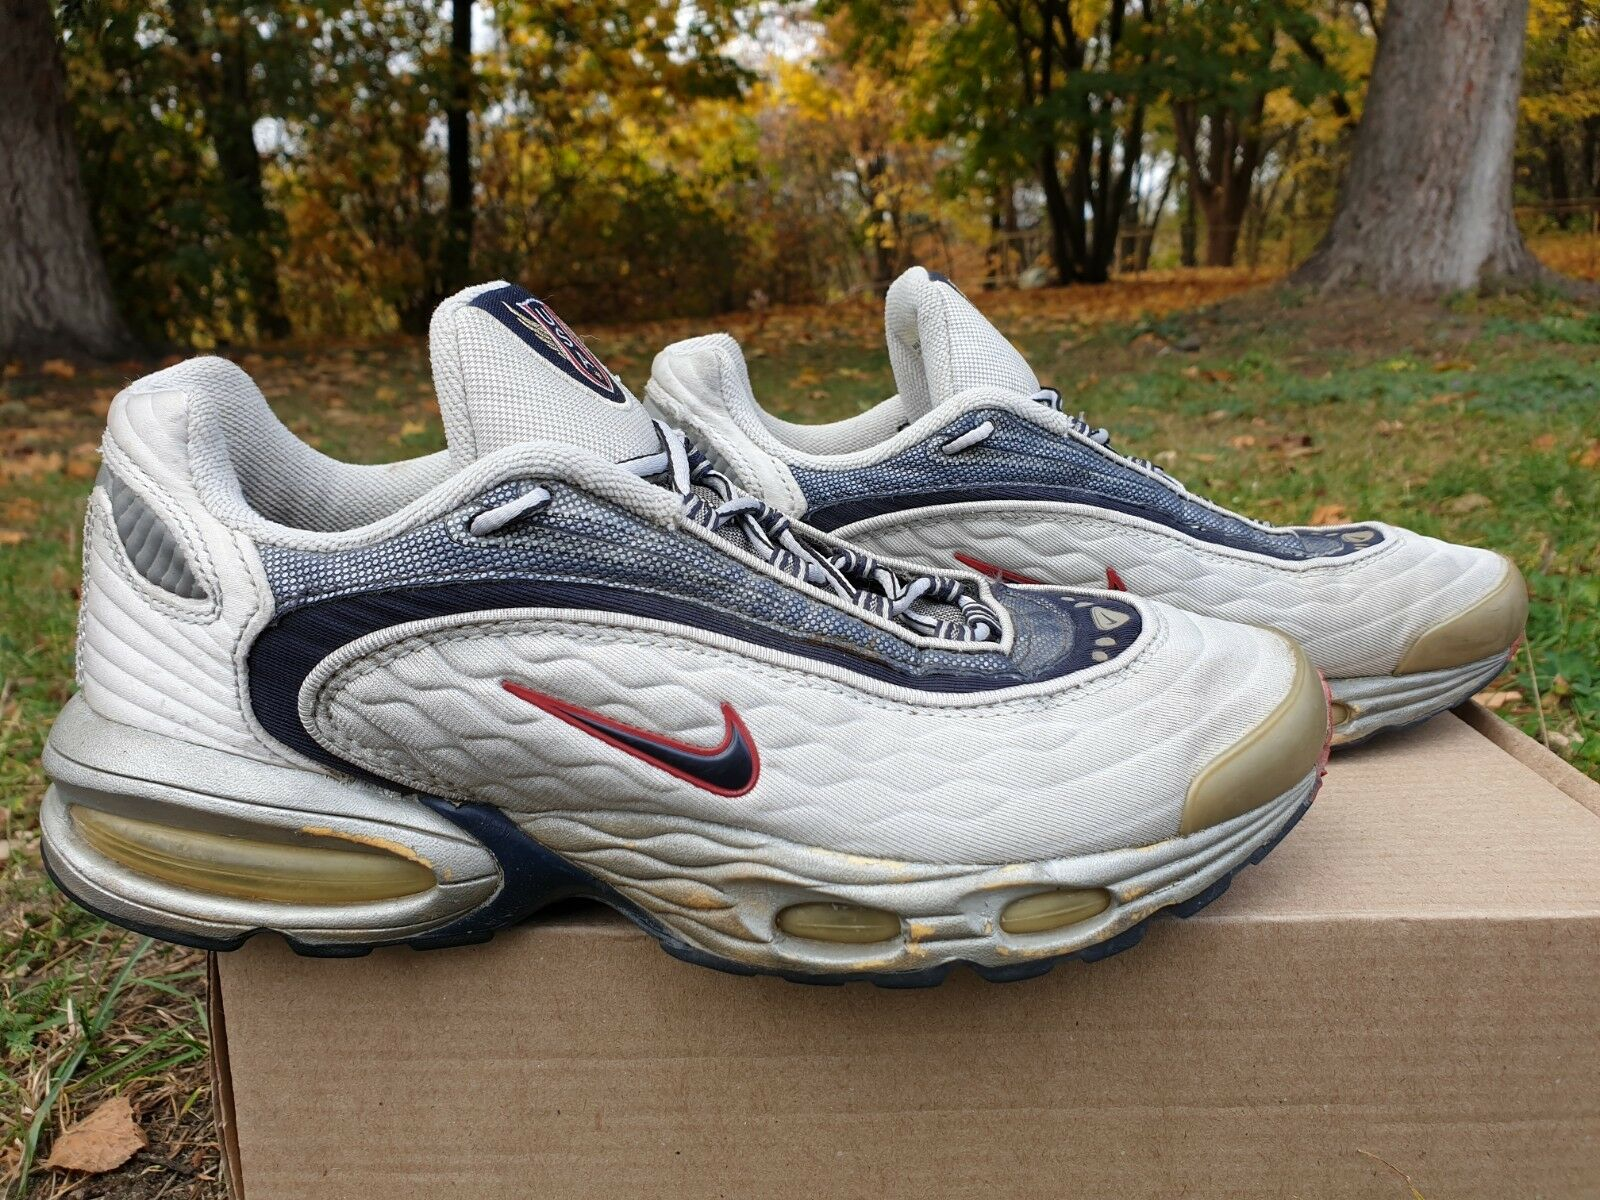 Original Nike 105231 041 Vintage Air Max 97 USA  , 2000 Rare , duralon brs 1000